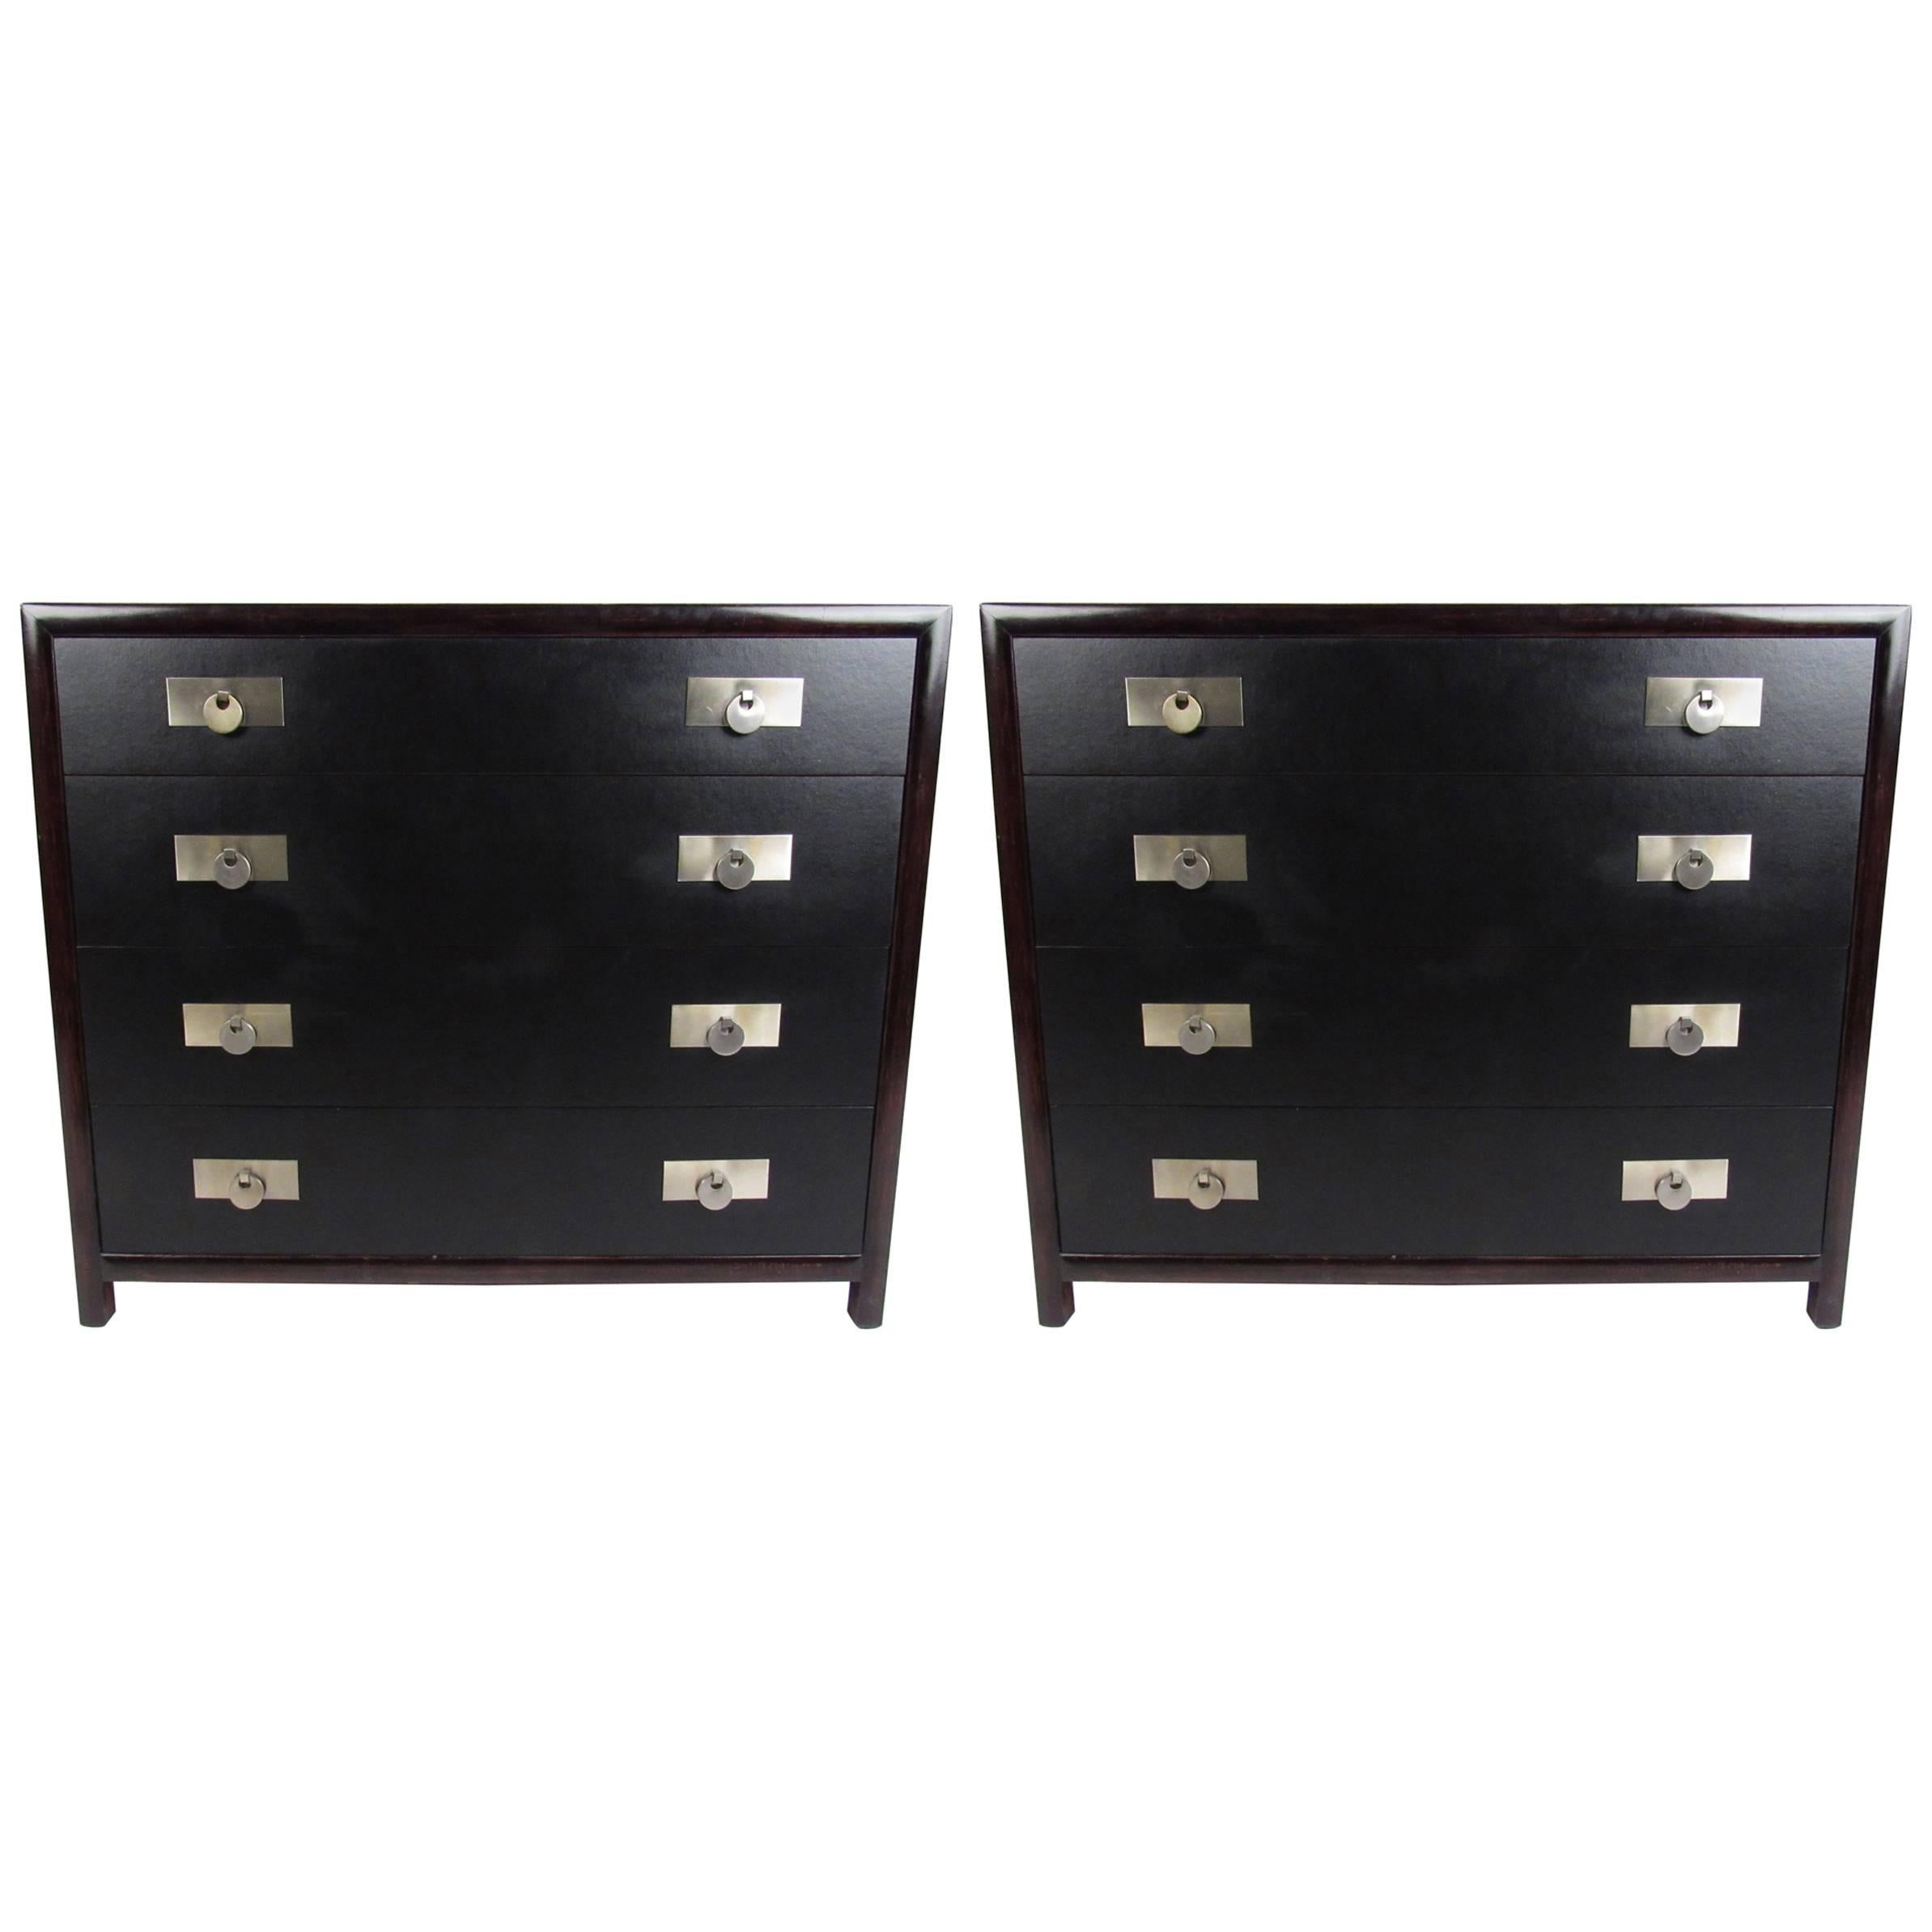 Pair of Vintage Modern Baker Dressers by Michael Taylor